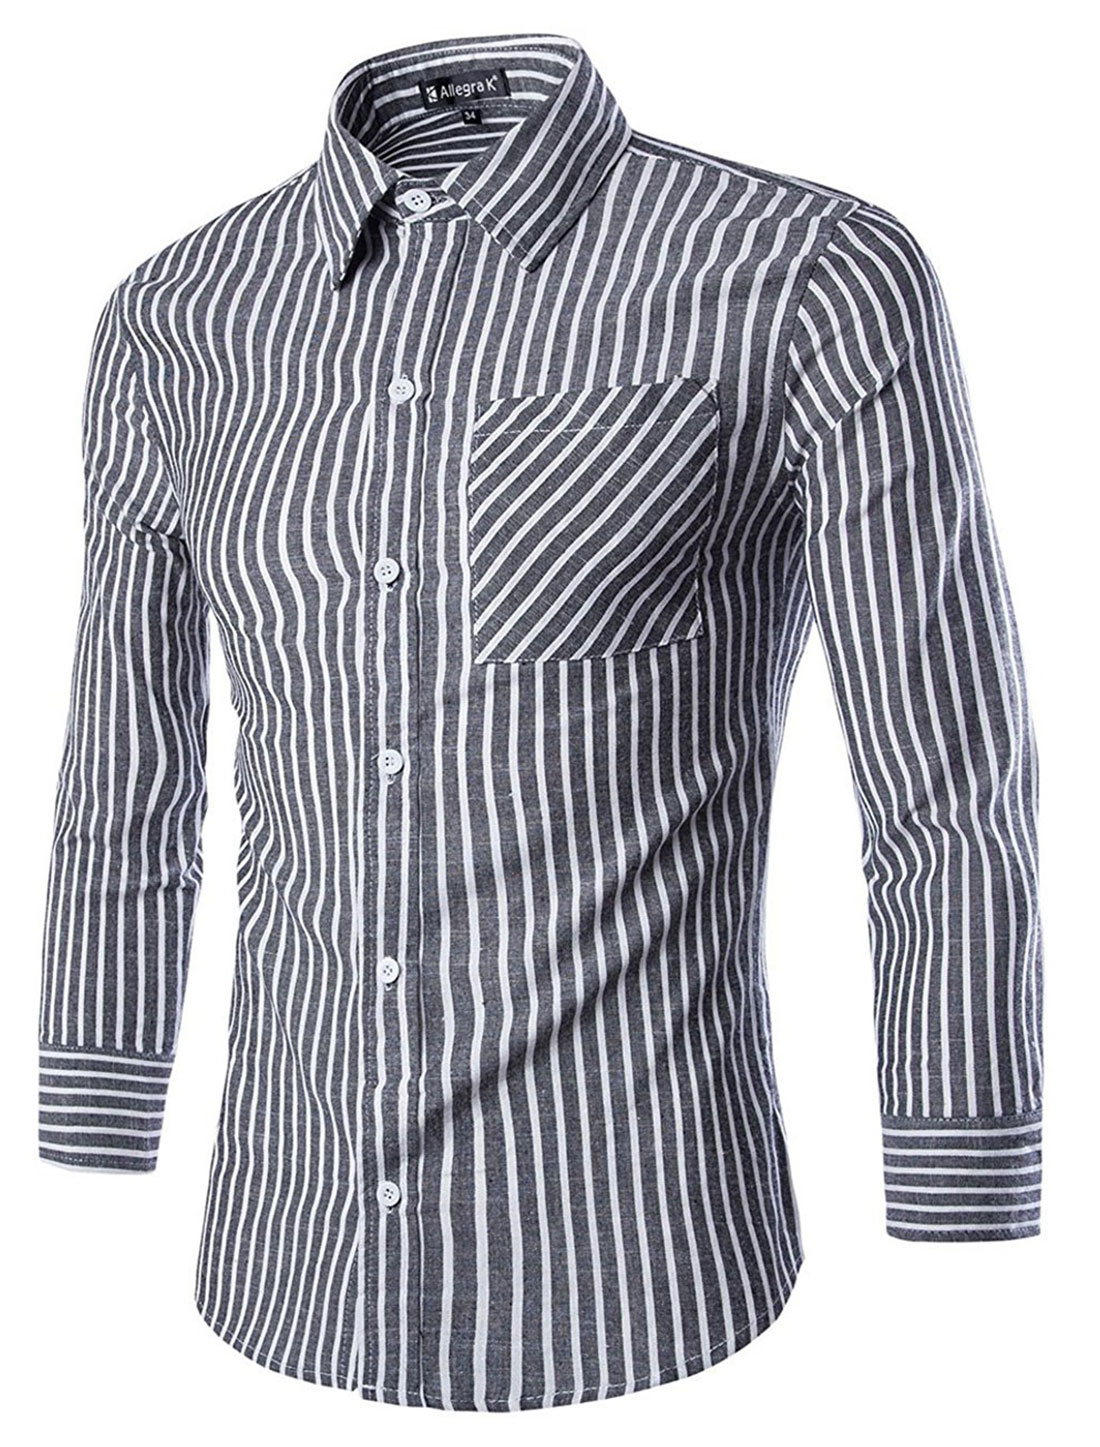 Men Long Sleeves Yarn-Dyed Stripes Shirt w Pocket Gray White L